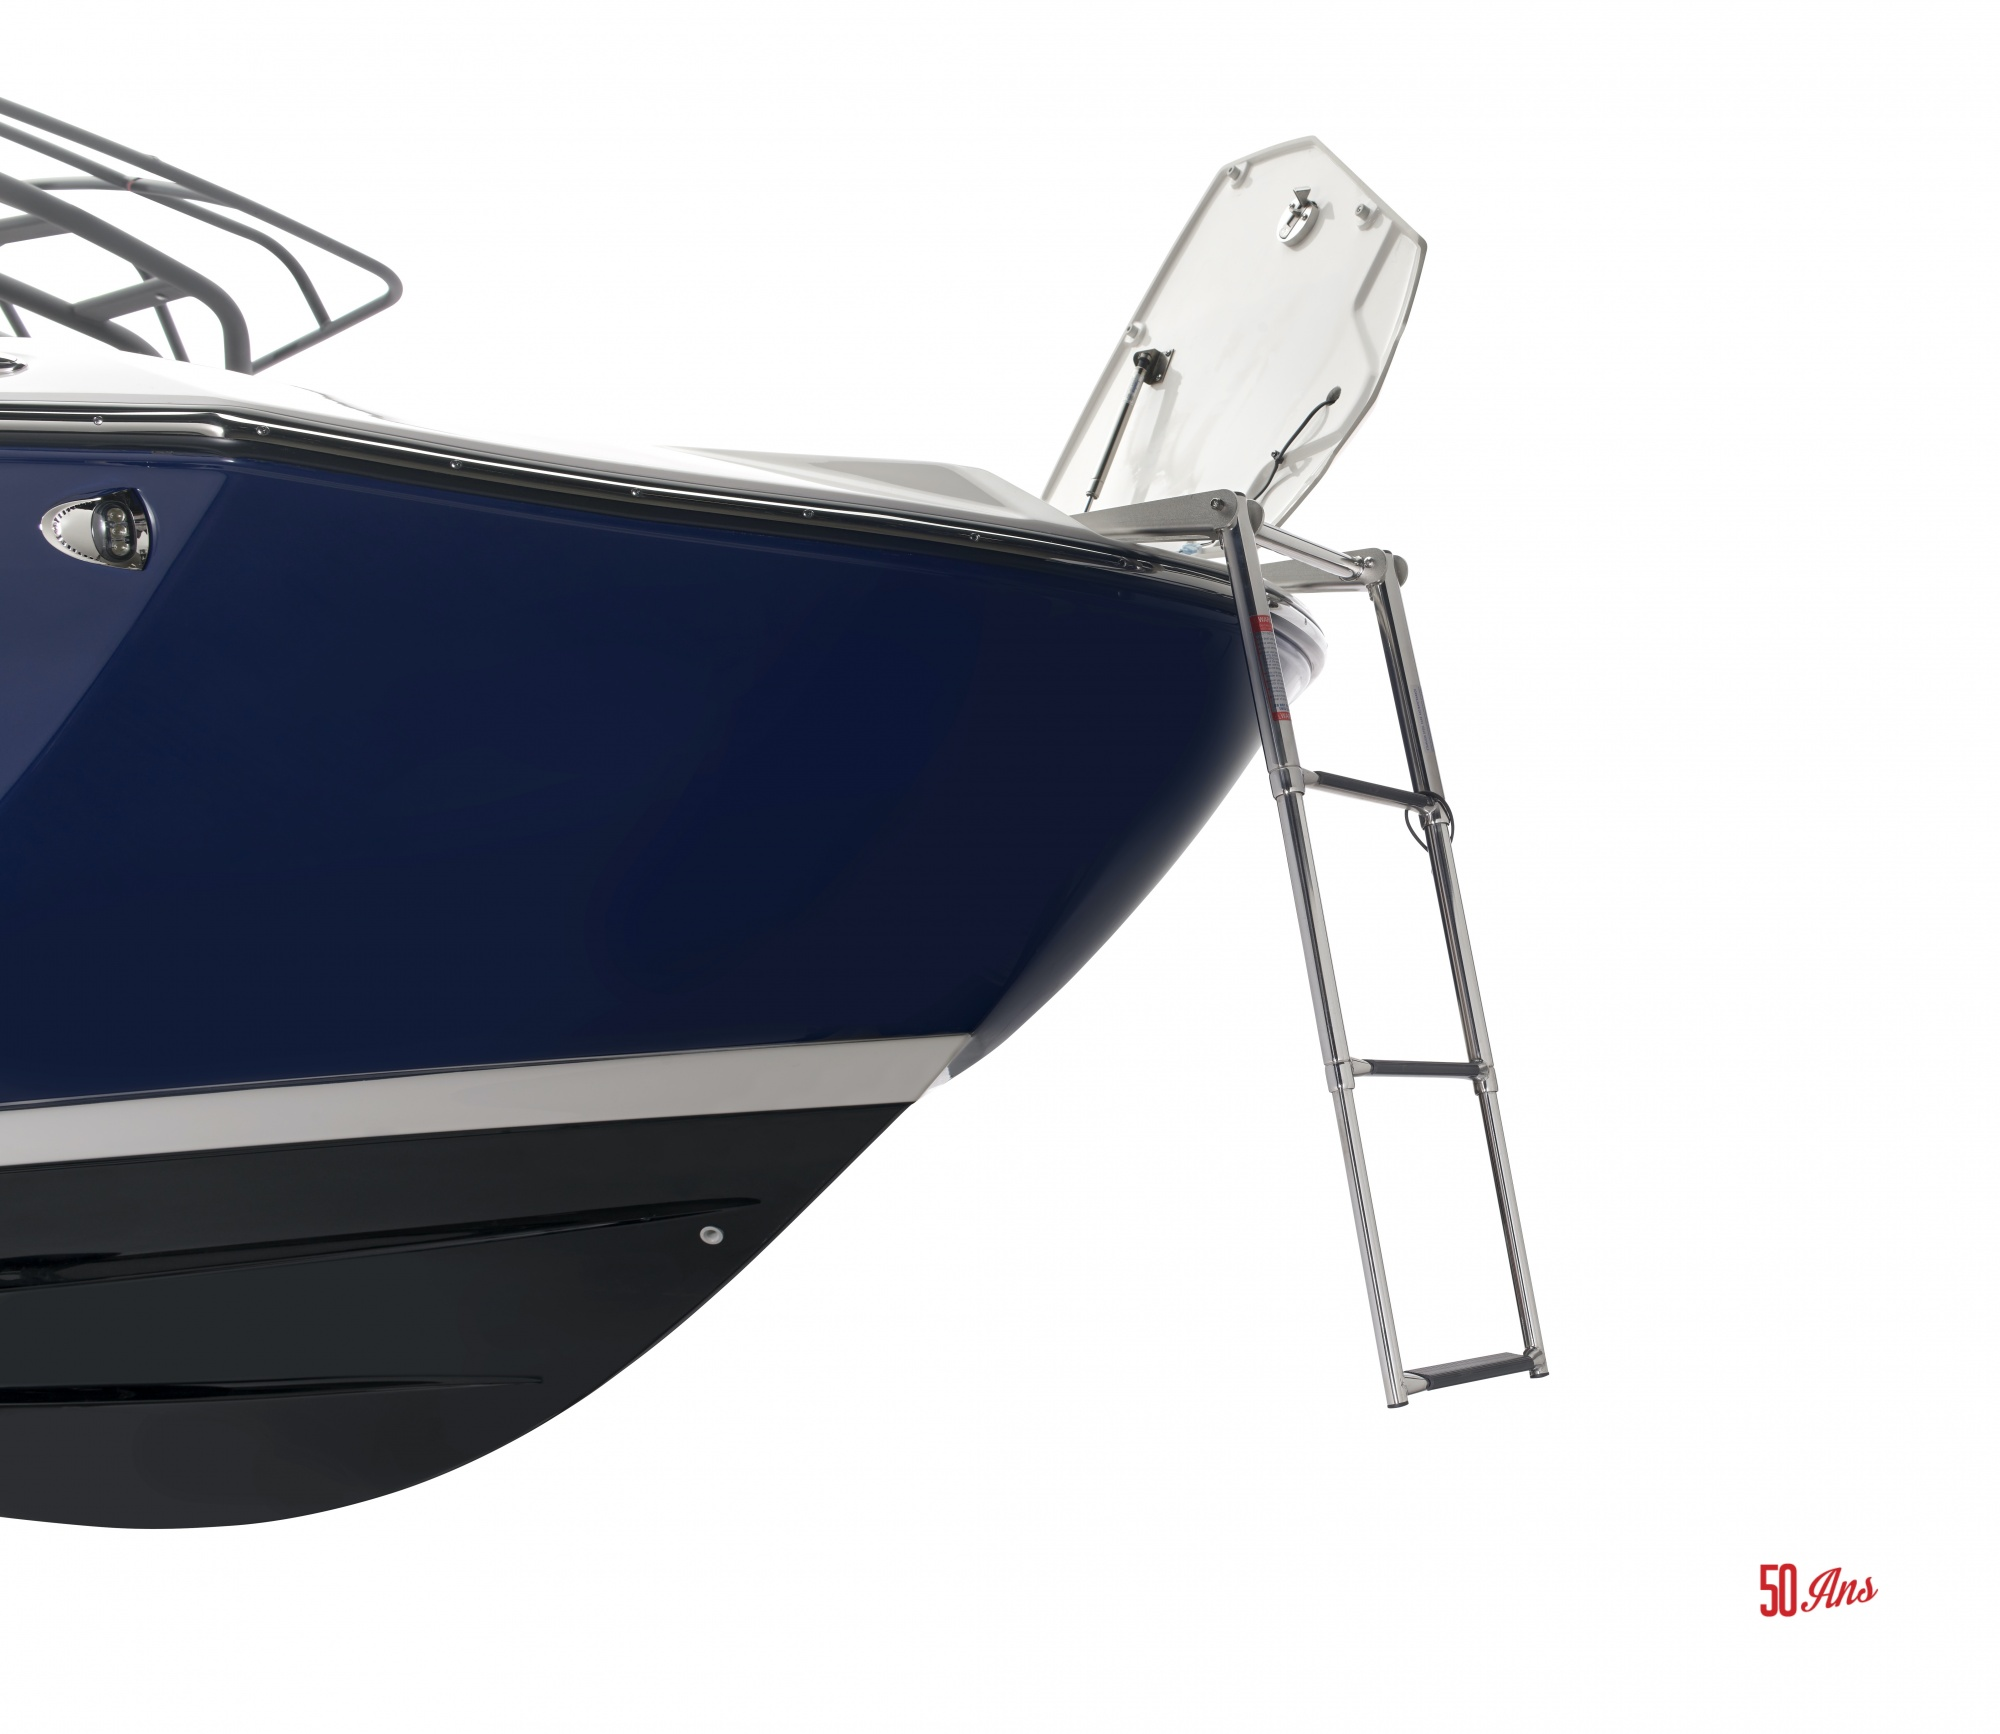 Yamaha 252 SD - 2021_252SD_Bow Ladder